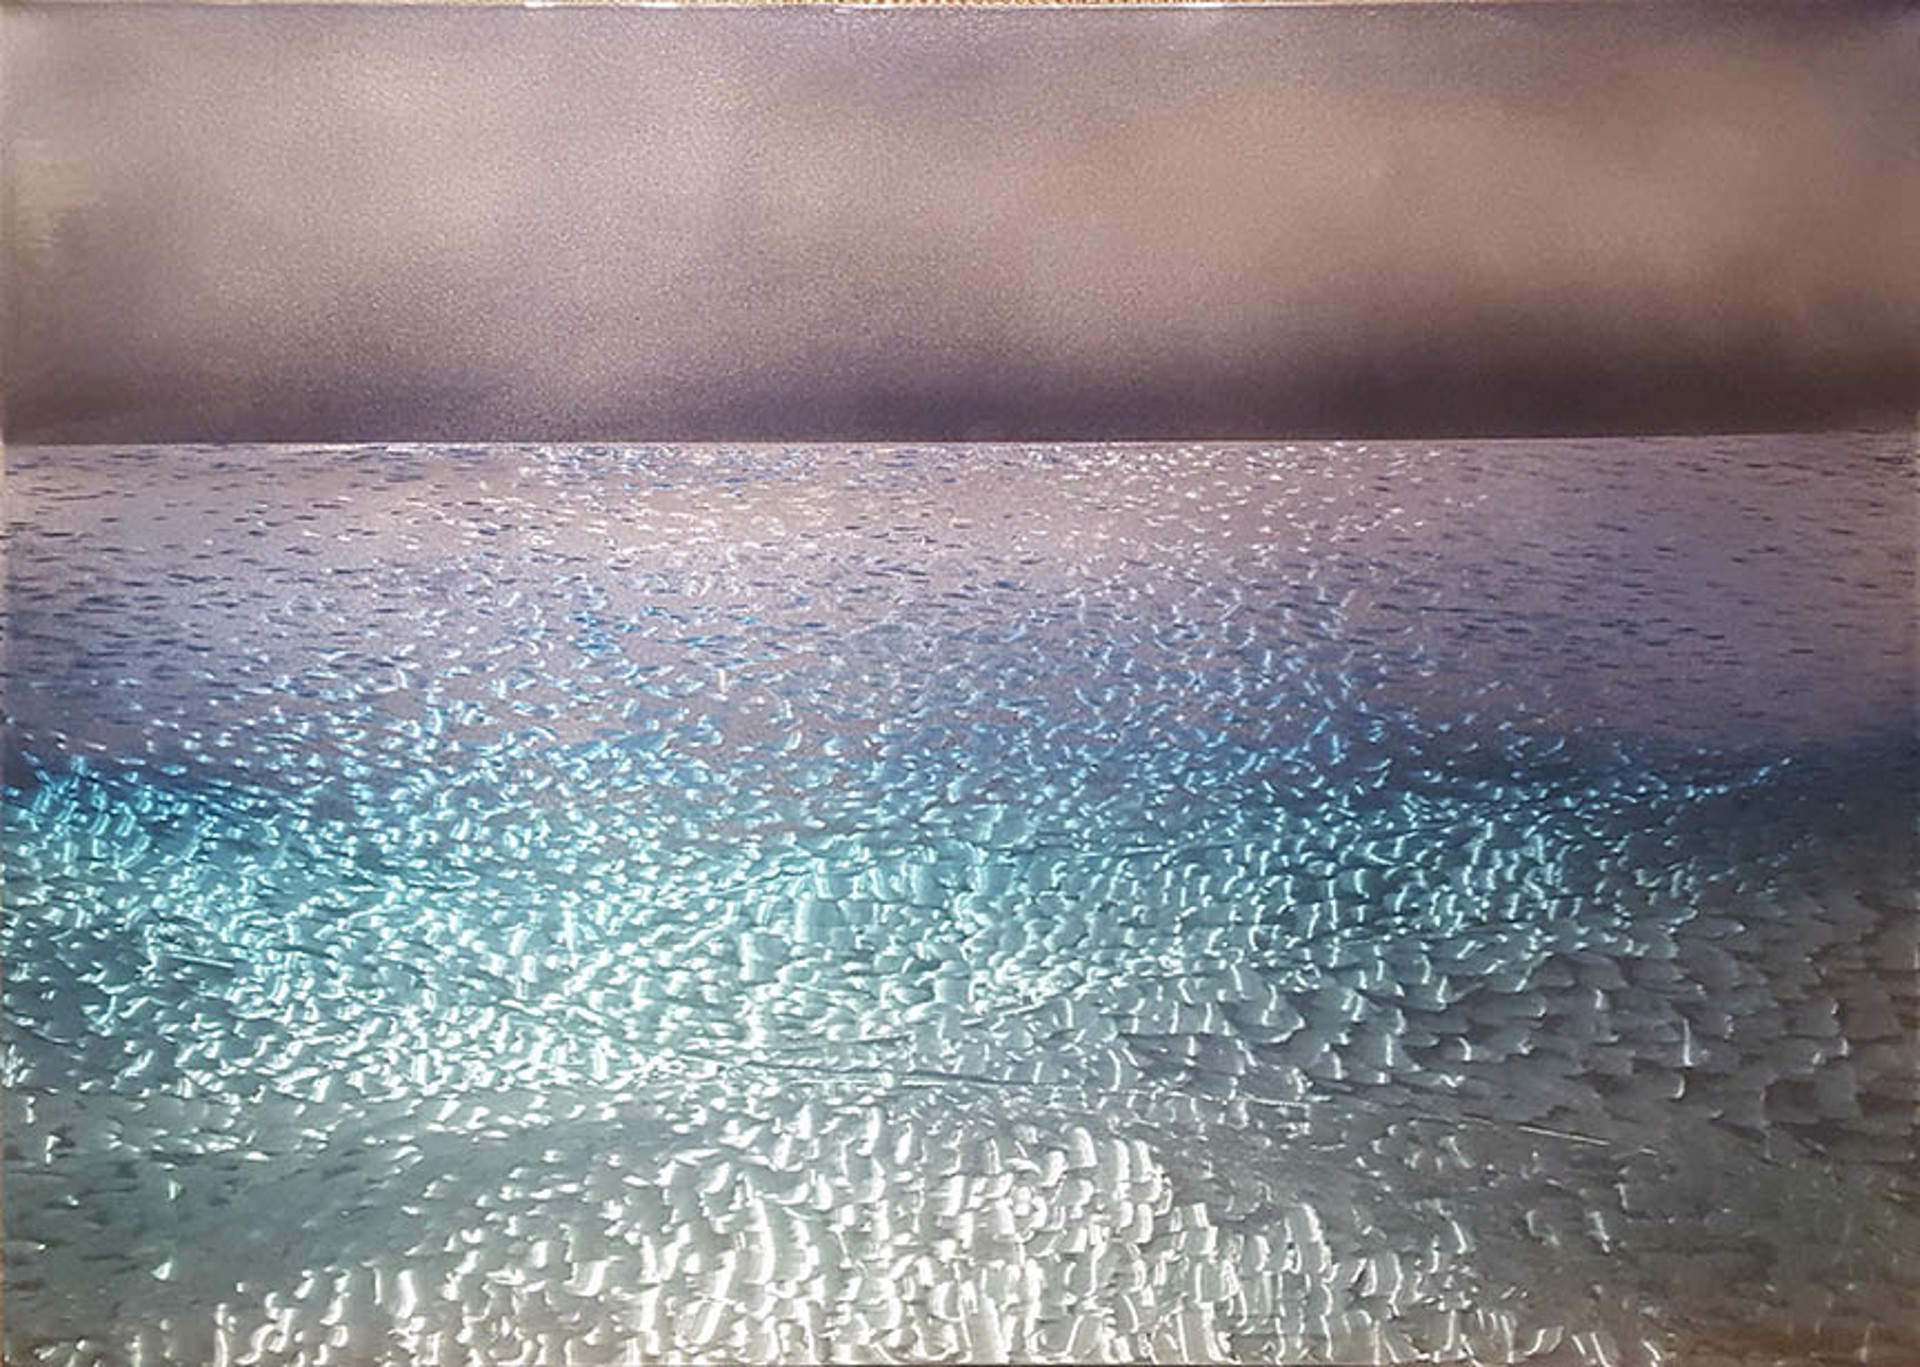 Windline From The Shore by Lori Wylie